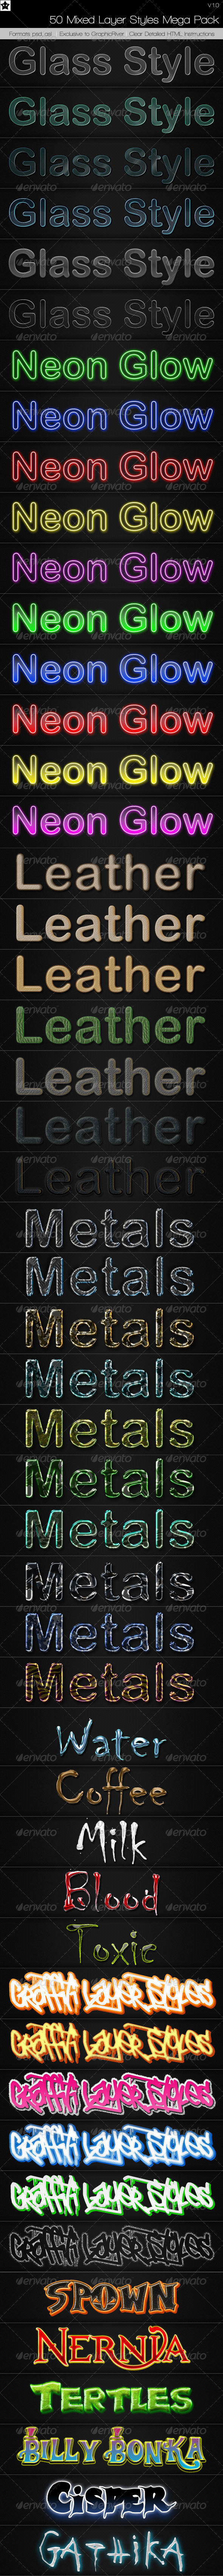 50 Mixed Layer Styles Mega Pack - Text Effects Styles